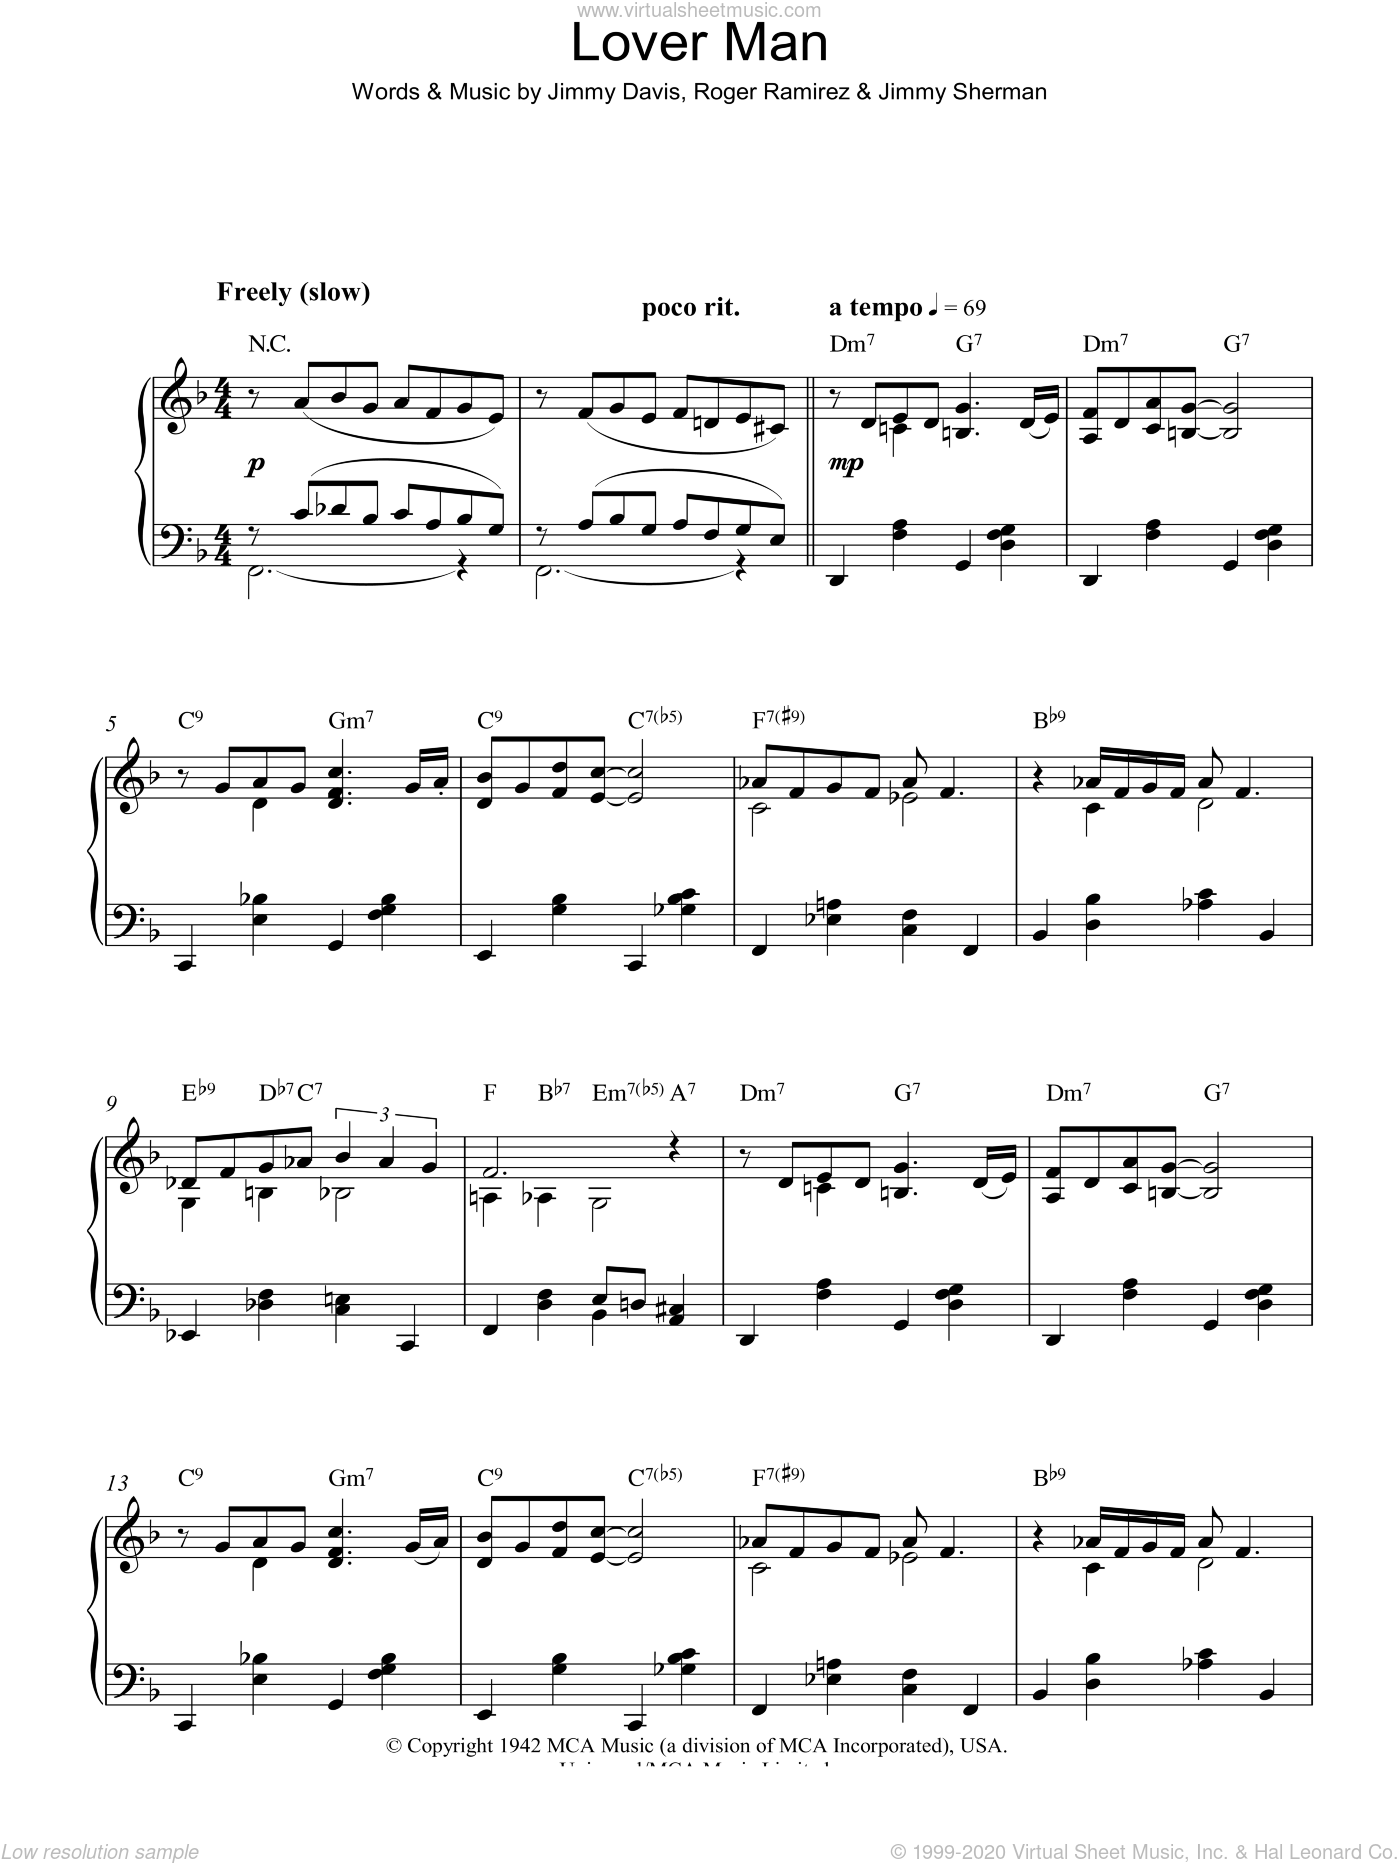 Lover Man (Oh, Where Can You Be) sheet music for piano solo by Jimmie Davis